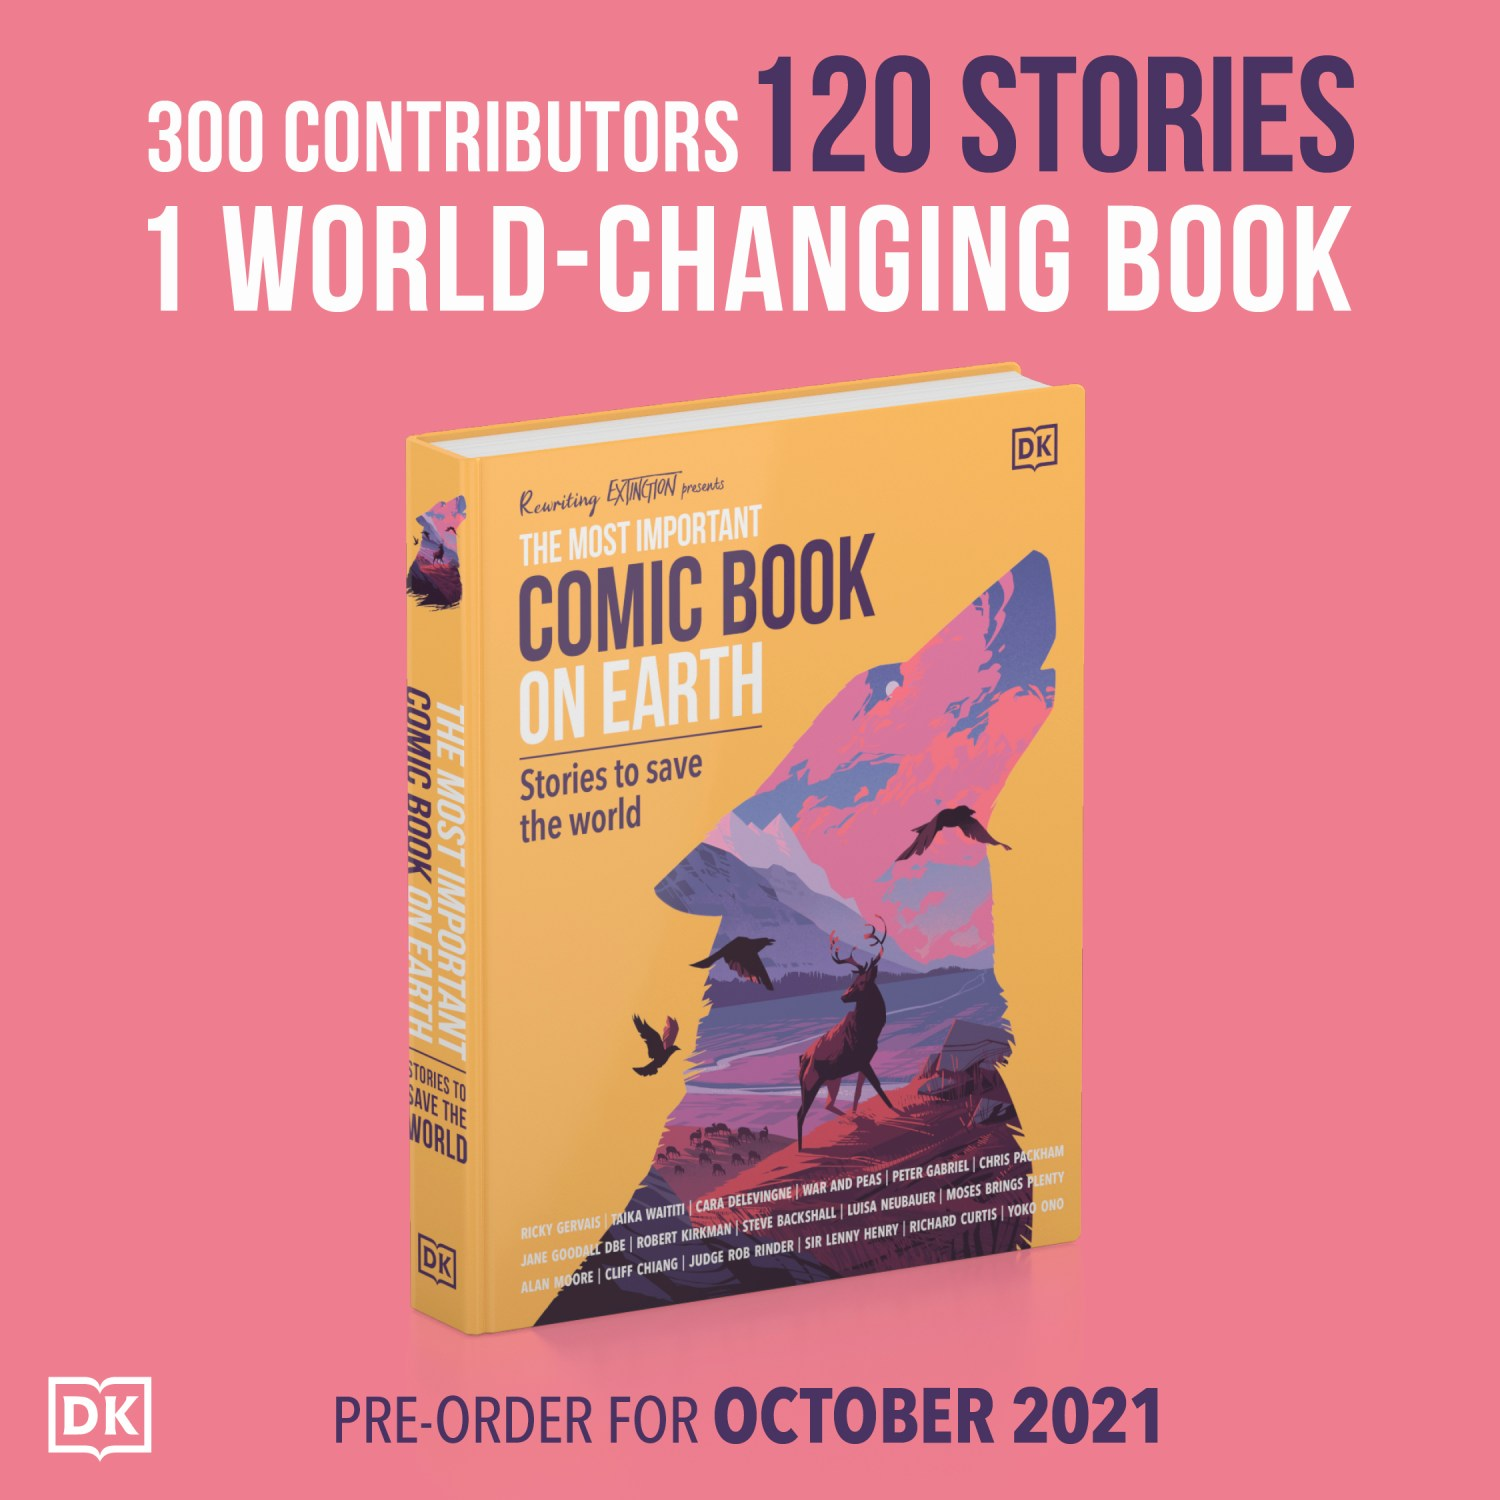 The Most Important Comic Book on Earth: Stories to Save the World